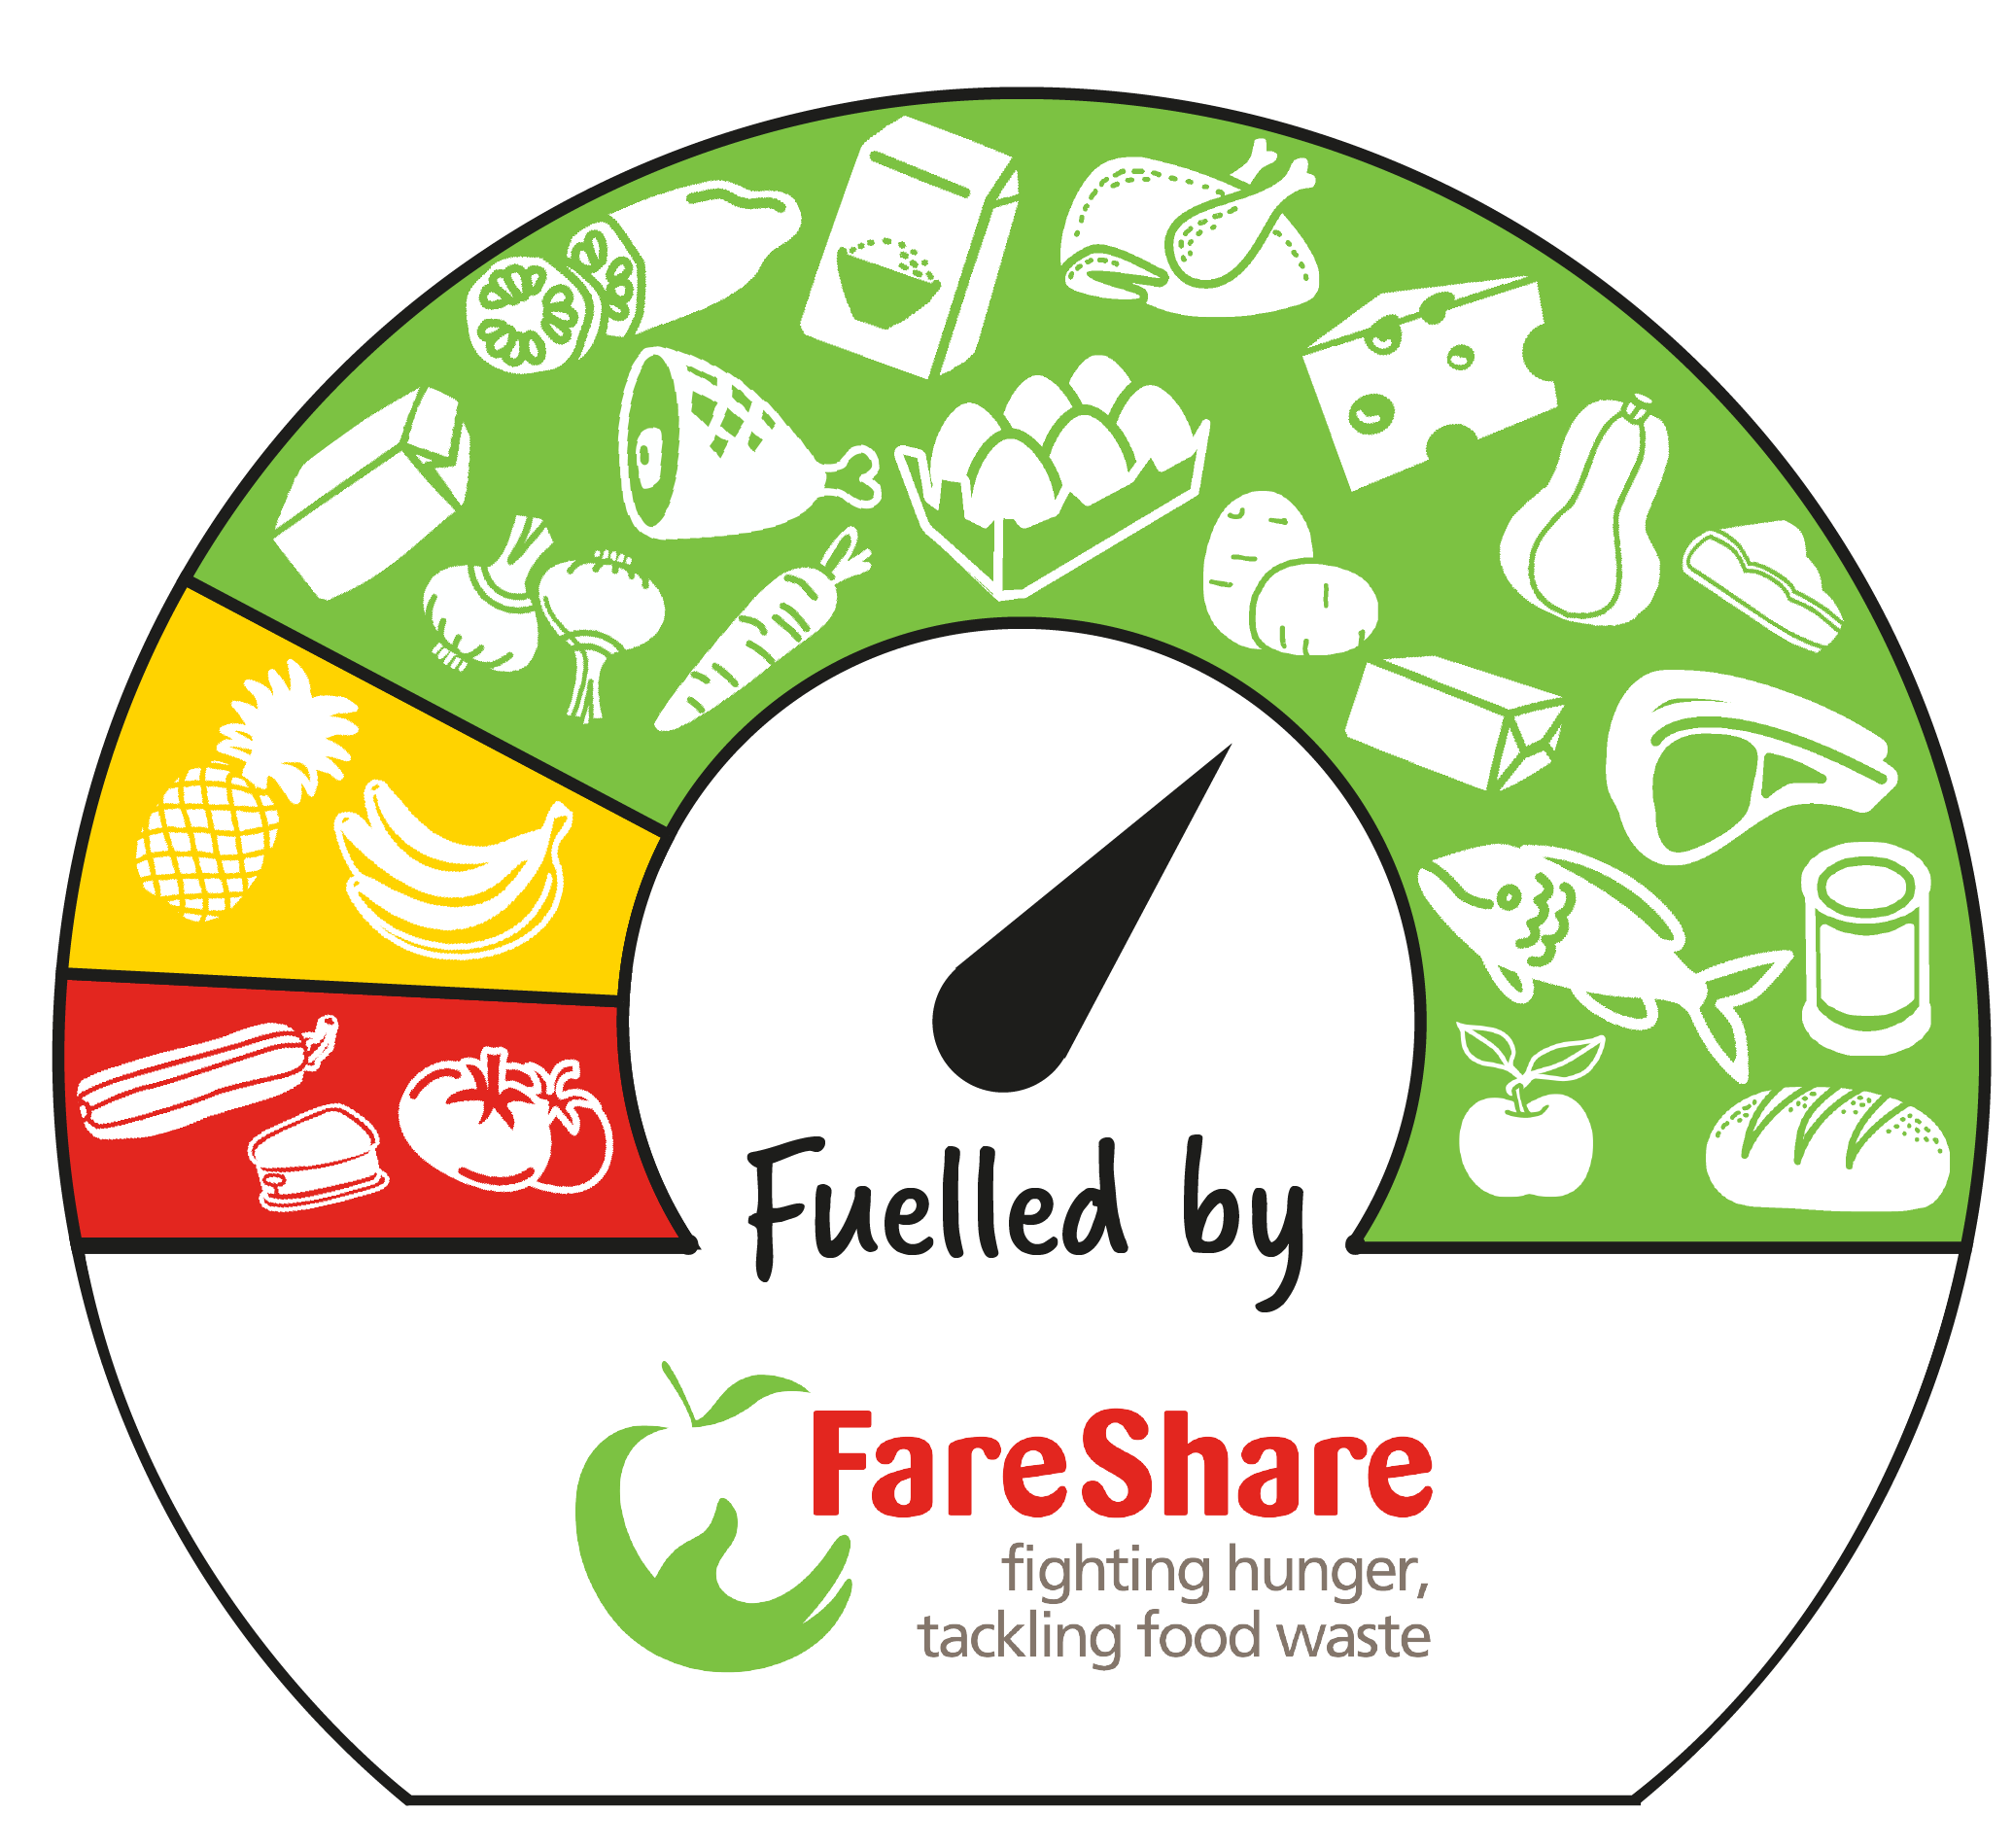 Fareshare copy